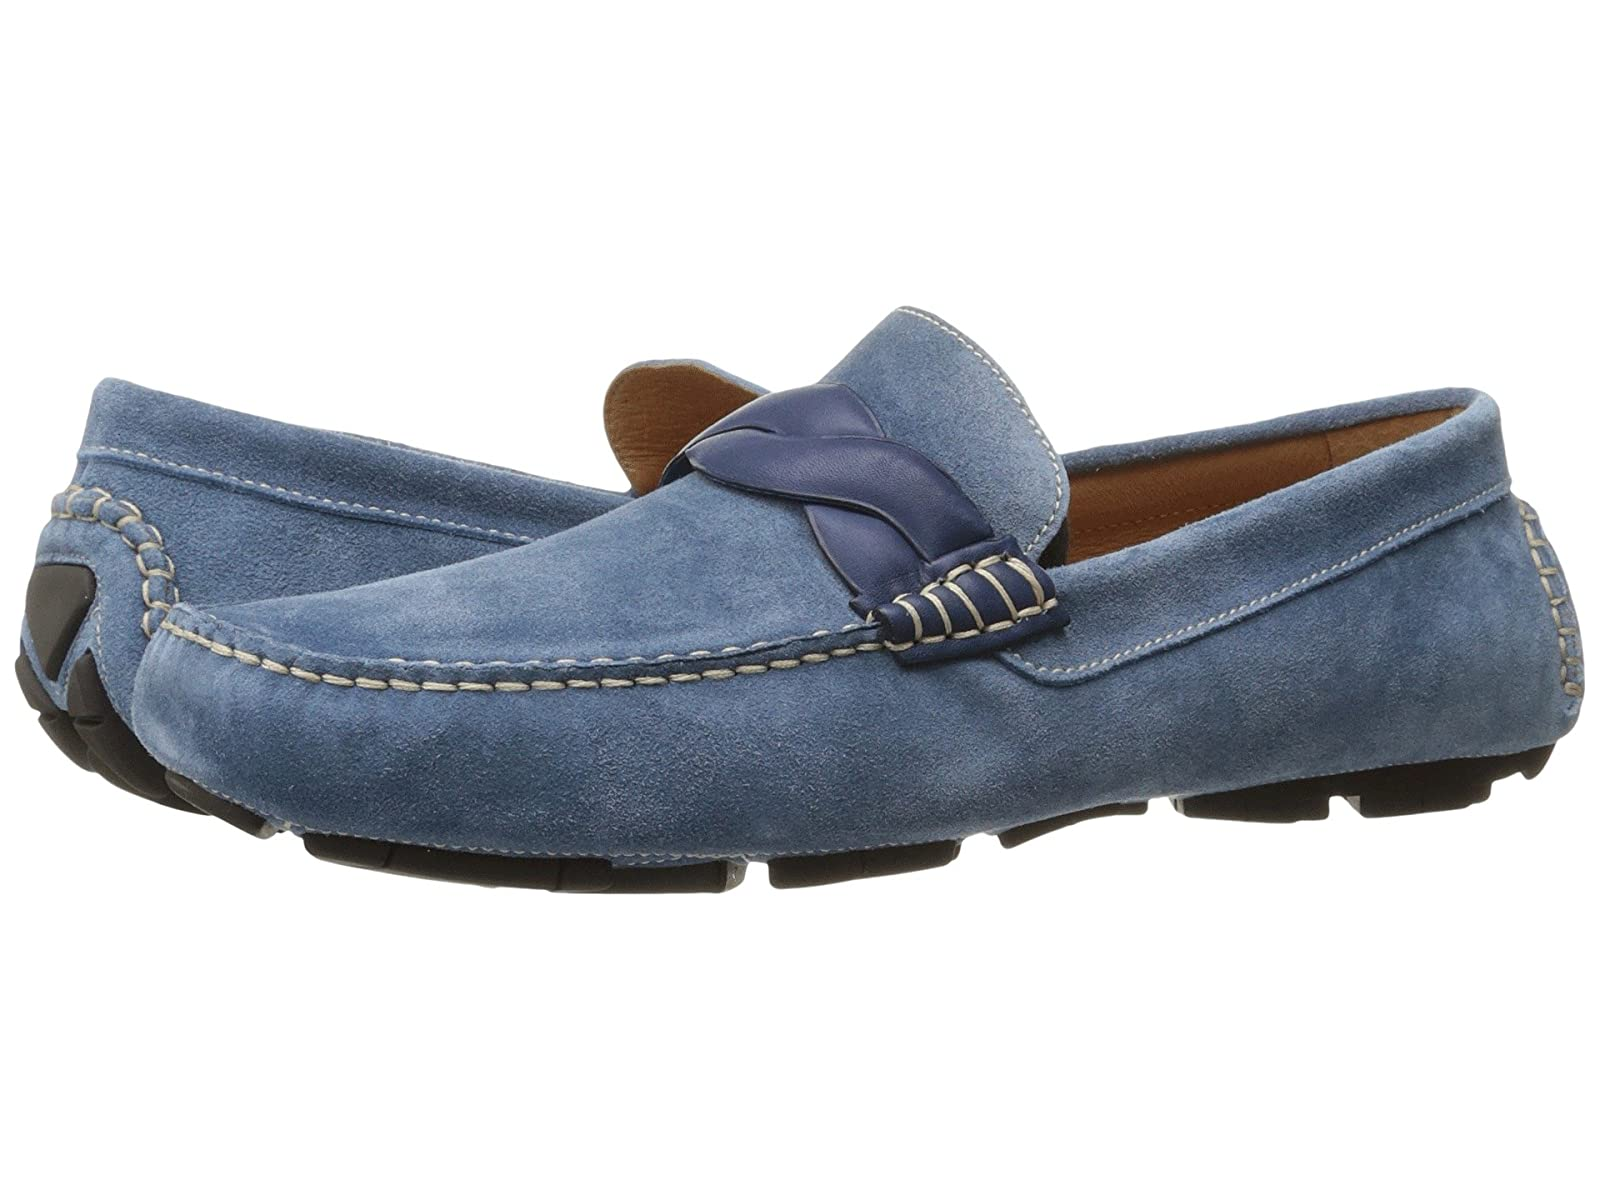 Donald J Pliner HansenCheap and distinctive eye-catching shoes